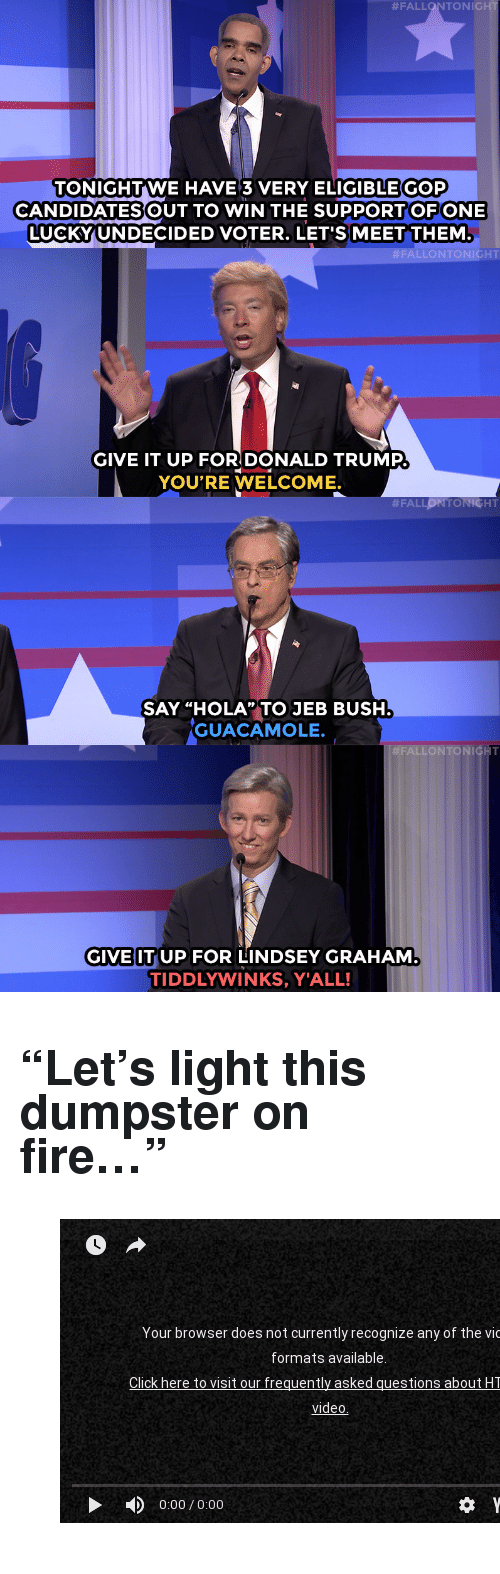 """Donald Trump, Fall, and Fire:  #FALL TONIC  TONIGHTWE HAVE3 VERY ELIGIBLEGOP  CANDIDATESOUT TO WIN THE SUPPORTOF ONE  LUCKYUNDECIDED VOTER. LET'S MEET THEM  ALLONTONIGHT  GIVE IT UP FOR DONALD TRUMP  YOU'RE WELCOME.  SAY """"HOLA,TO JEB BUSH  GUACAMOLE.  FALLON TONI  GIVE ITUP FOR LINDSEY GRAHAM  TIDDLYWINKS, Y'ALL! <h2><b>""""Let's light this dumpster on fire…""""</b></h2><figure class=""""tmblr-embed tmblr-full"""" data-provider=""""youtube"""" data-orig-width=""""540"""" data-orig-height=""""304"""" data-url=""""https%3A%2F%2Fwww.youtube.com%2Fwatch%3Fv%3DPoyClMUrUSs""""><iframe width=""""540"""" height=""""304"""" id=""""youtube_iframe"""" src=""""https://www.youtube.com/embed/PoyClMUrUSs?feature=oembed&enablejsapi=1&origin=https://safe.txmblr.com&wmode=opaque"""" frameborder=""""0"""" allowfullscreen=""""""""></iframe></figure>"""